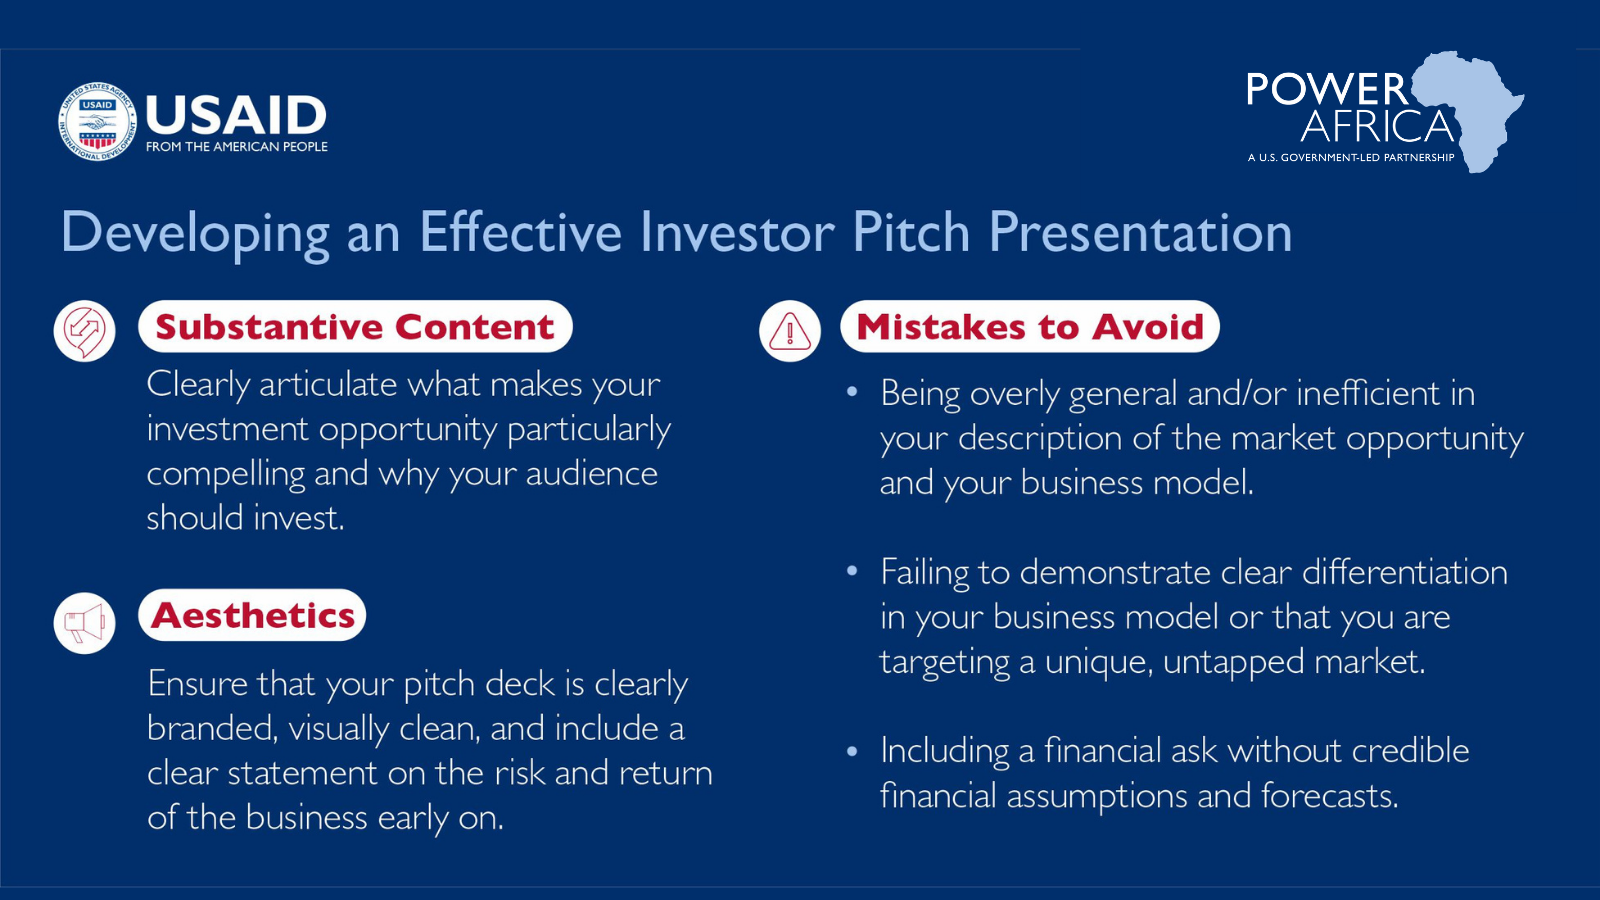 Developing an Effective Investor Pitch Presentation Infographic